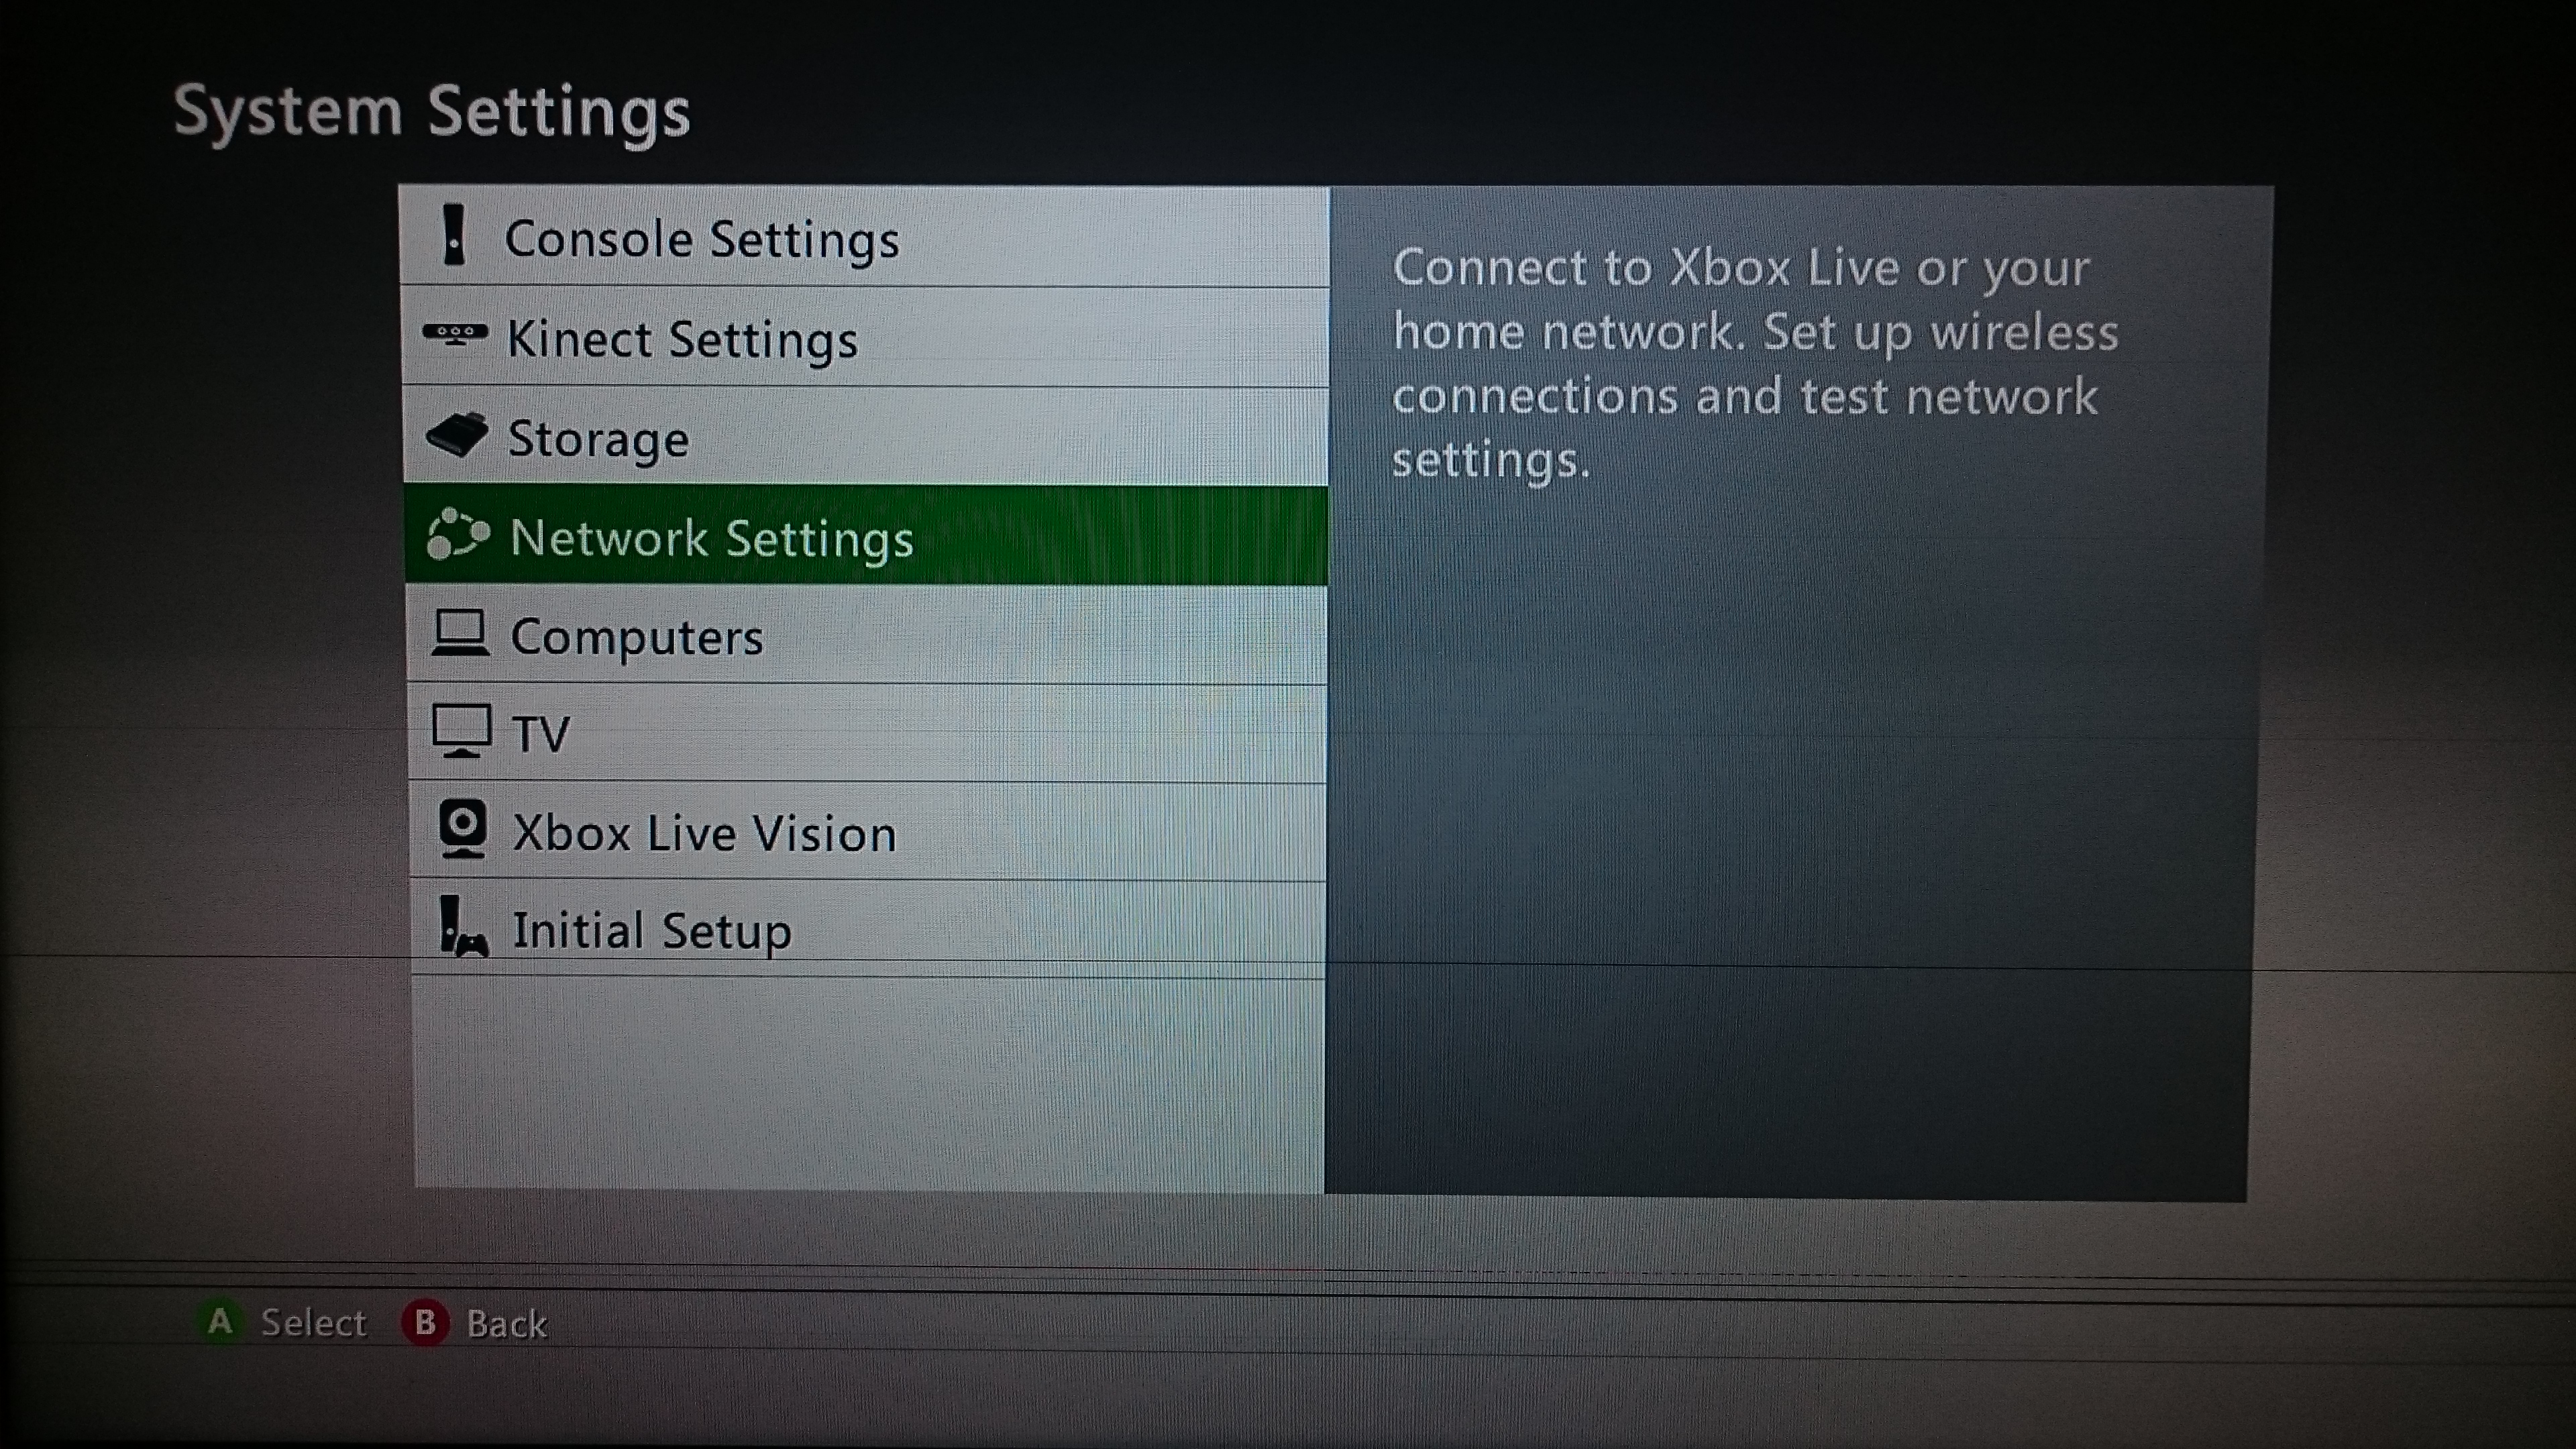 networking, wireless, connecting to illinoisnet_guest with xbox 360